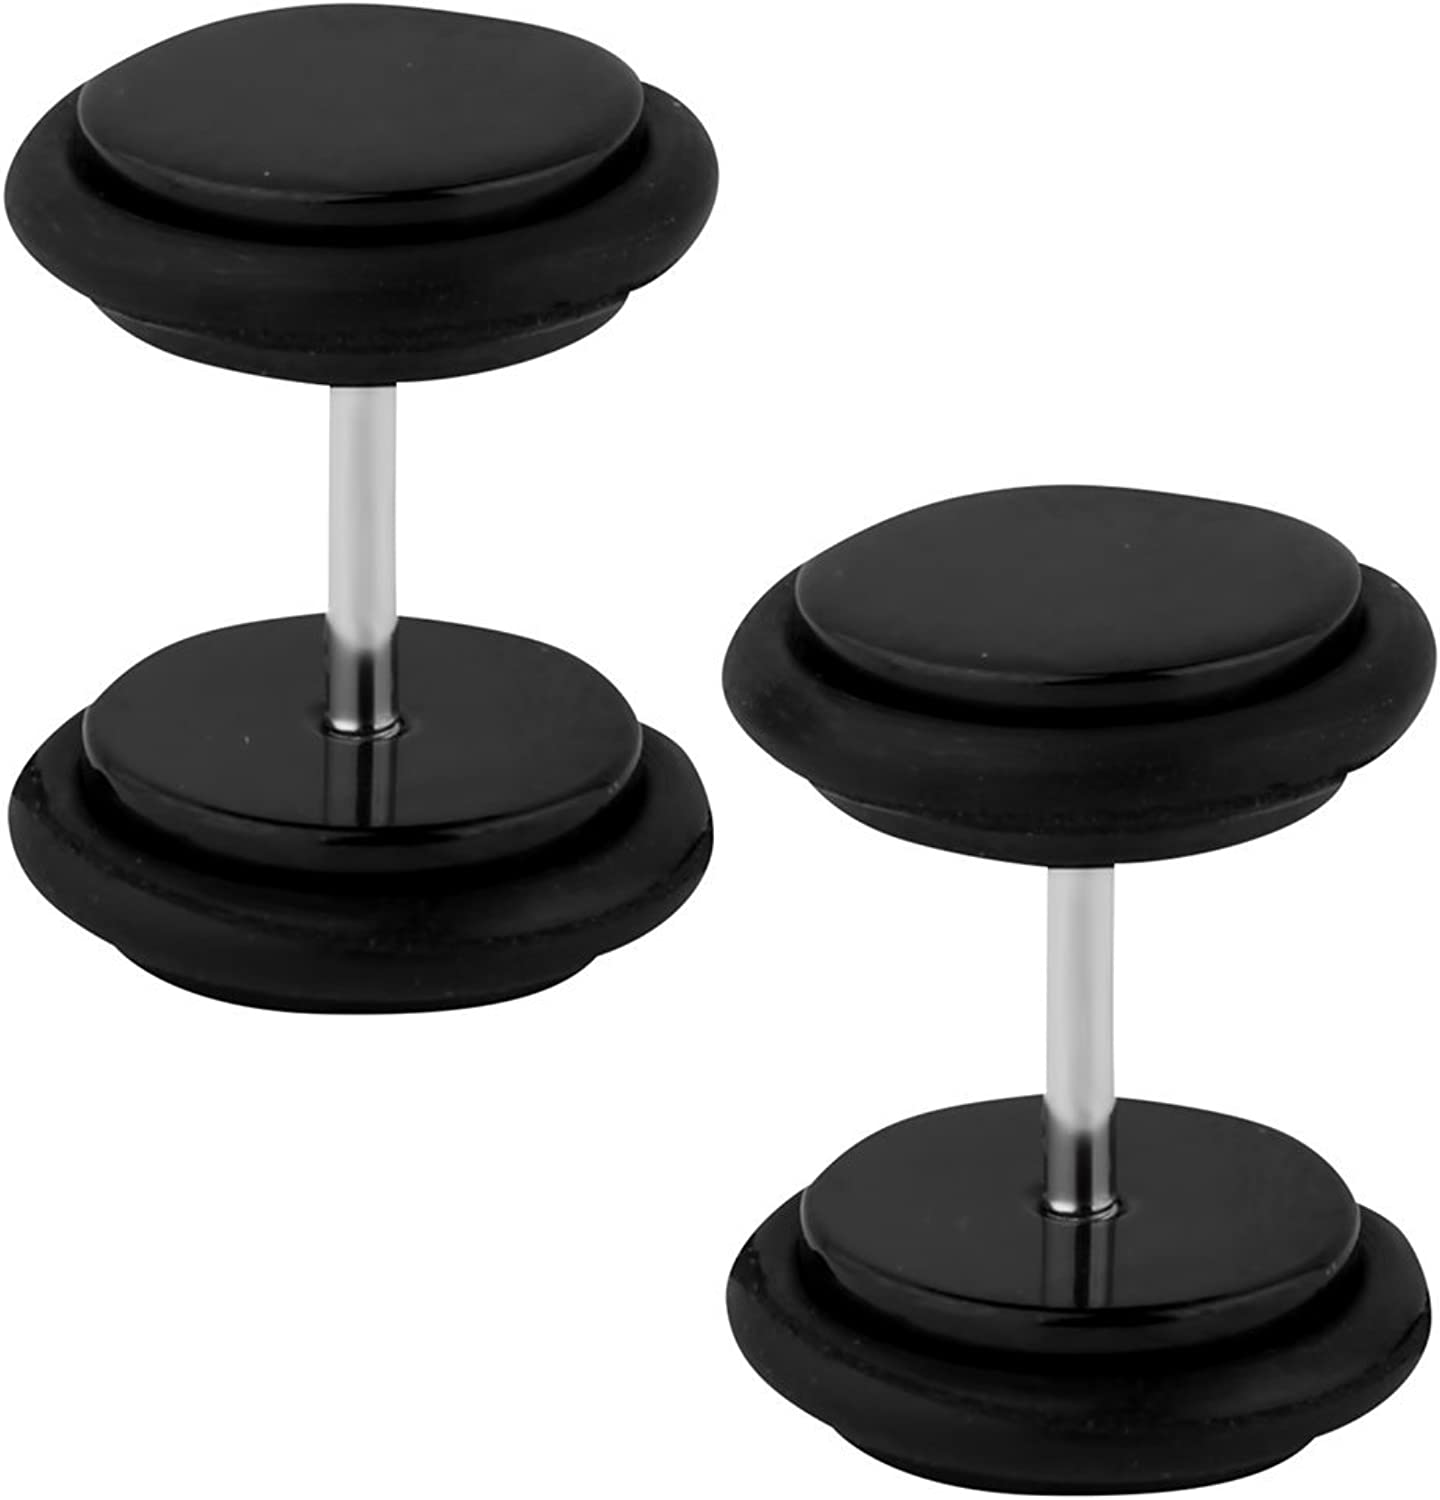 Forbidden Body Jewelry Popular shop is the lowest price challenge 18g Cheater Plugs: Steel 8 0g Surgical Ranking TOP5 mm